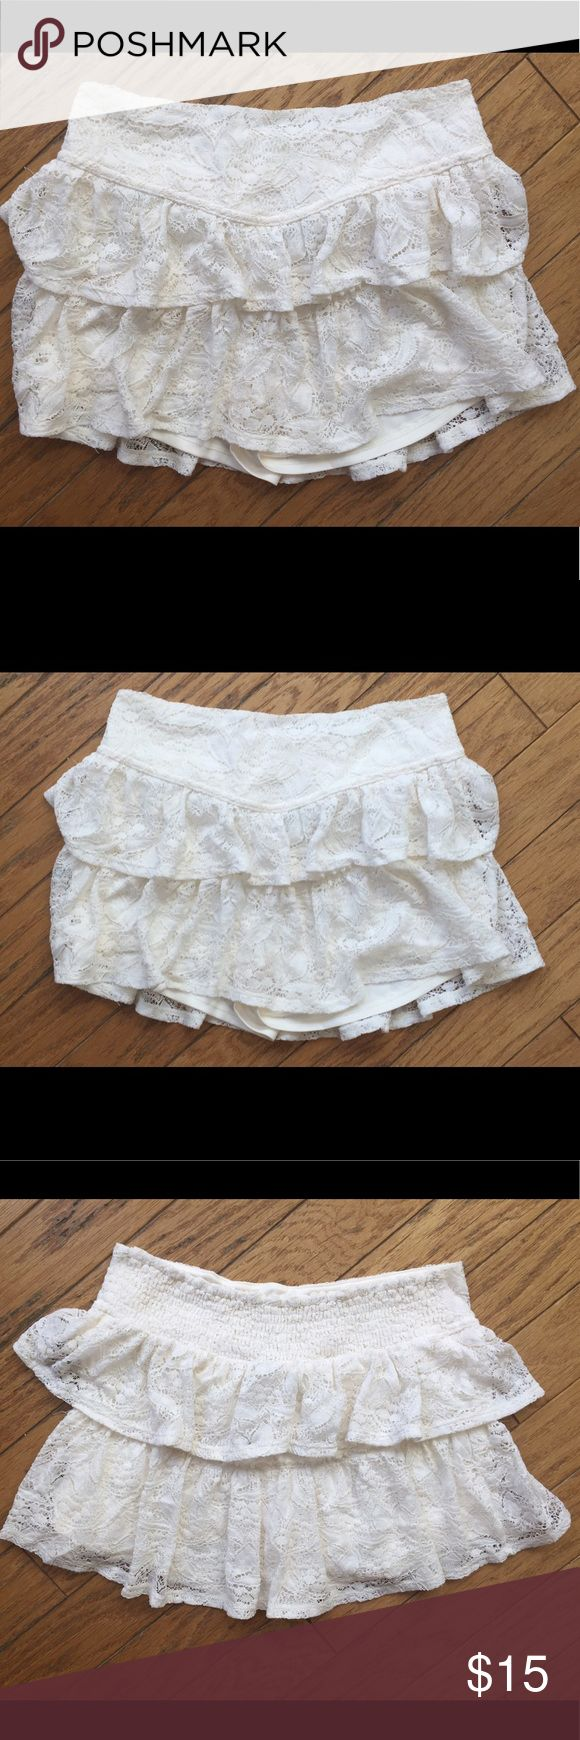 Full Tilt Women's White Crochet Lace Skorts Shorts Full Tilt - Juniors size large. Women's white or cream colored crochet and lace skirted shorts. Lined underneath with a silky pair of shorts attached. Adorable but don't fit me sadly, I ordered them online and only wore them to try them on so they're NWOT. Make me an offer! I discount bundles ✨ Full Tilt Shorts Skorts